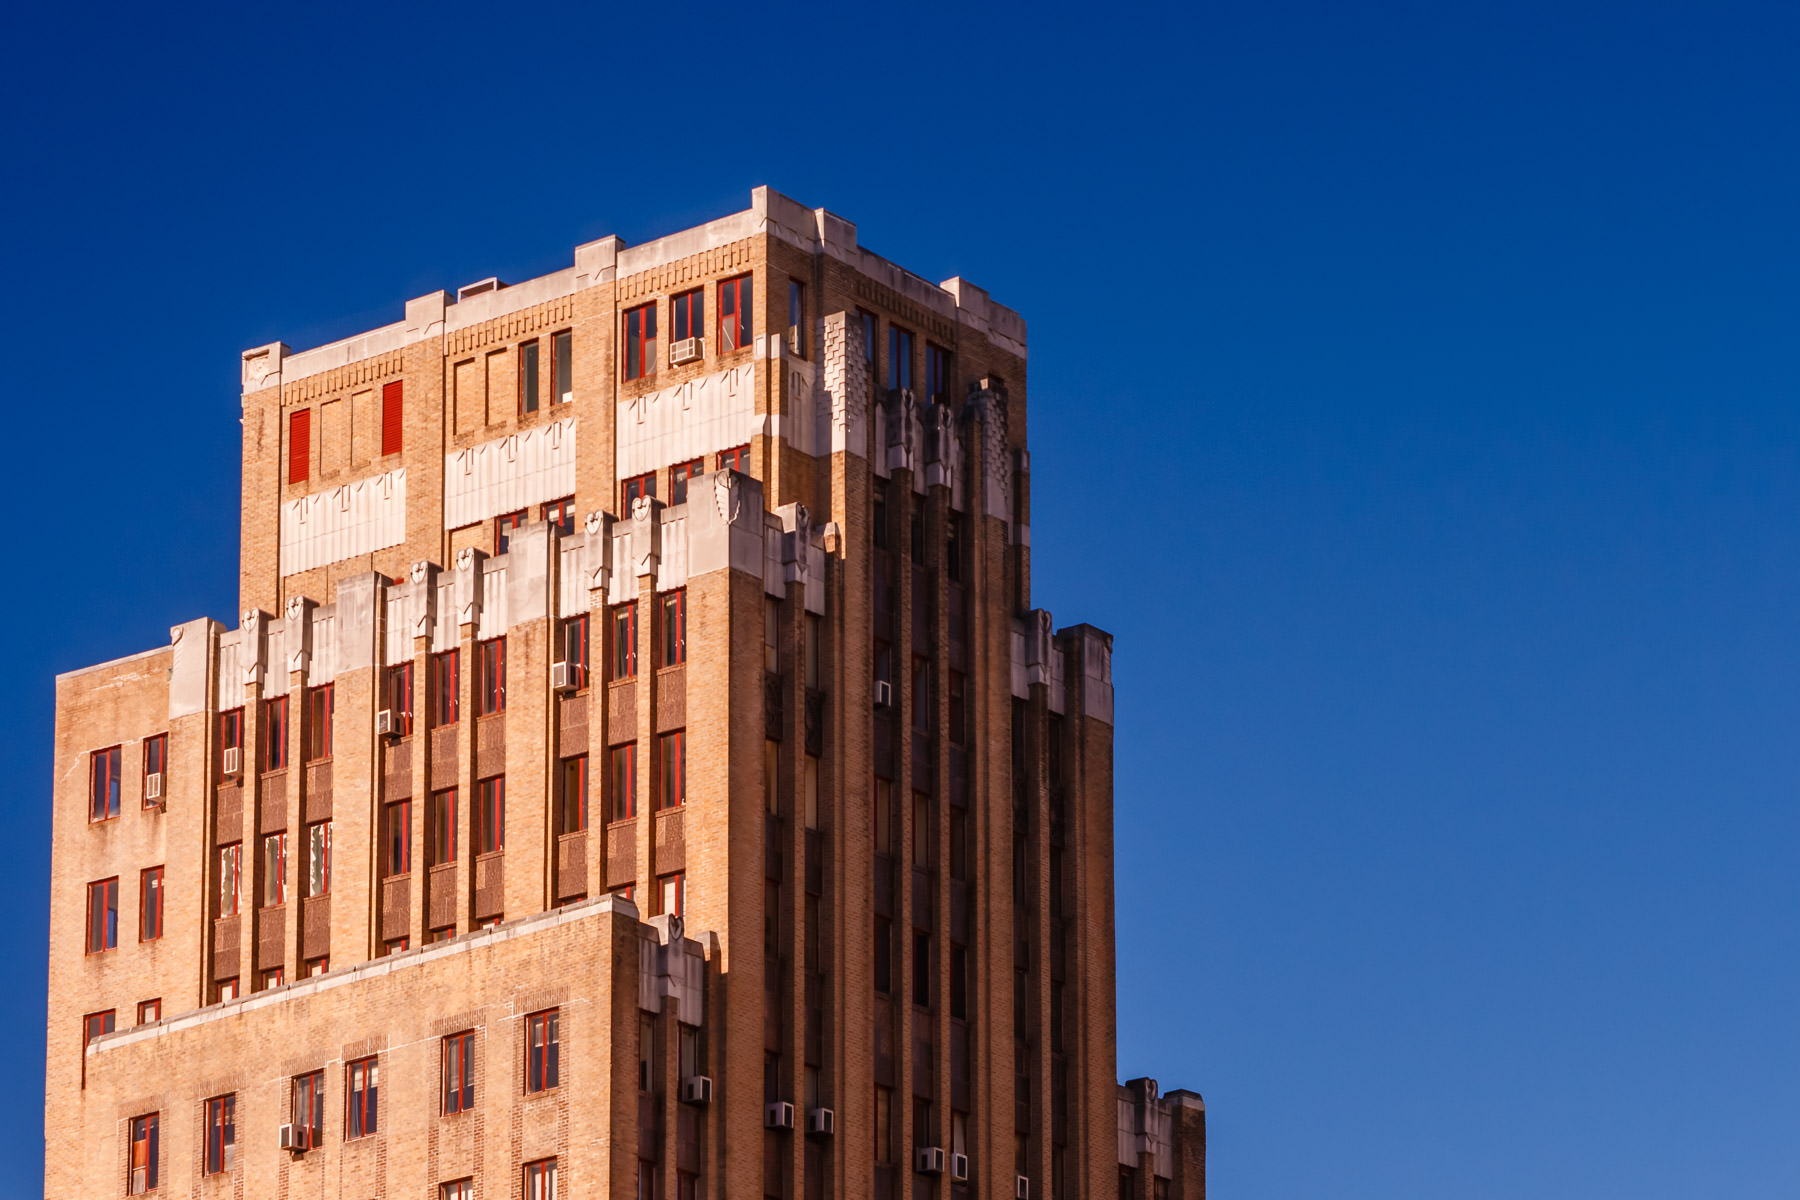 The decaying Medical Arts Building, once the tallest building in Arkansas, rises into the sky over Hot Springs.